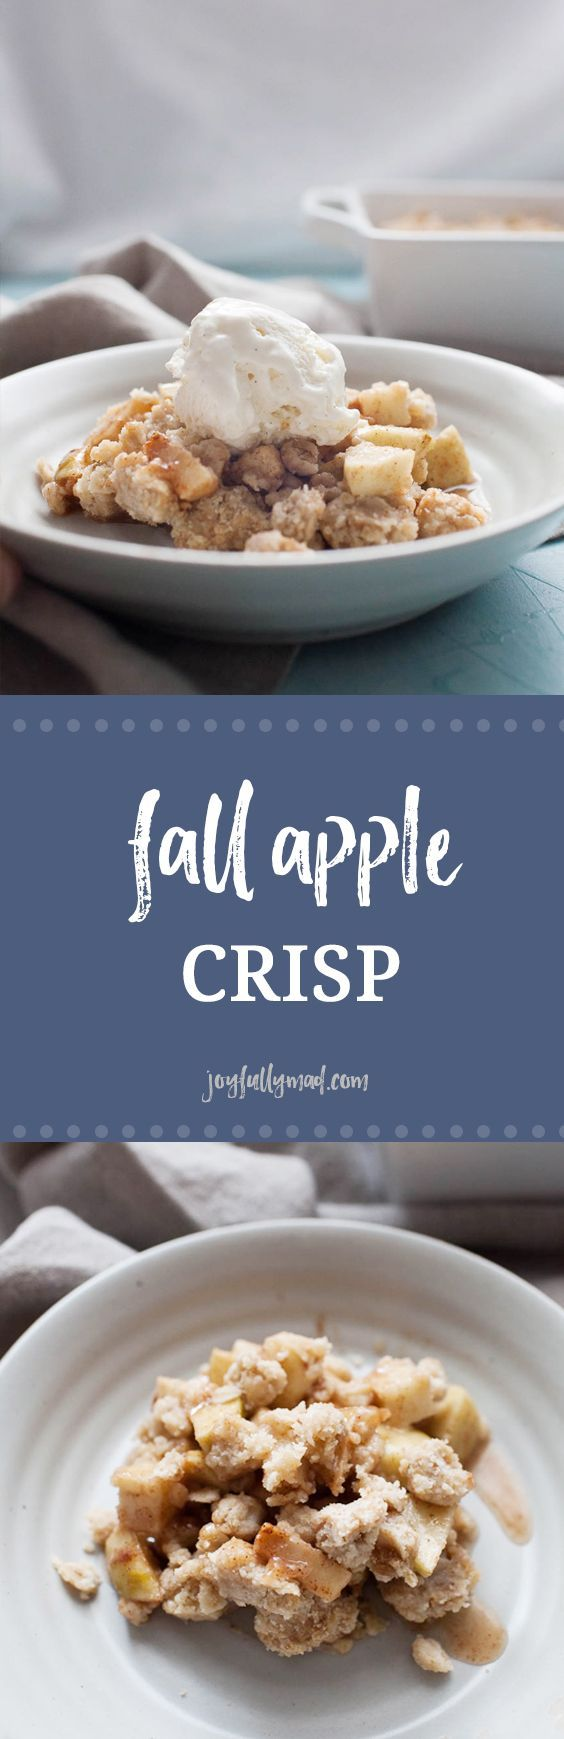 This fall apple crisp is an easy dessert that is perfect for any occasion this fall! Made with a mix of sweet and tart apples and topped with the perfect brown sugar oat crumble topping! It's best served warm with a scoop of ice cream but no matter how yo